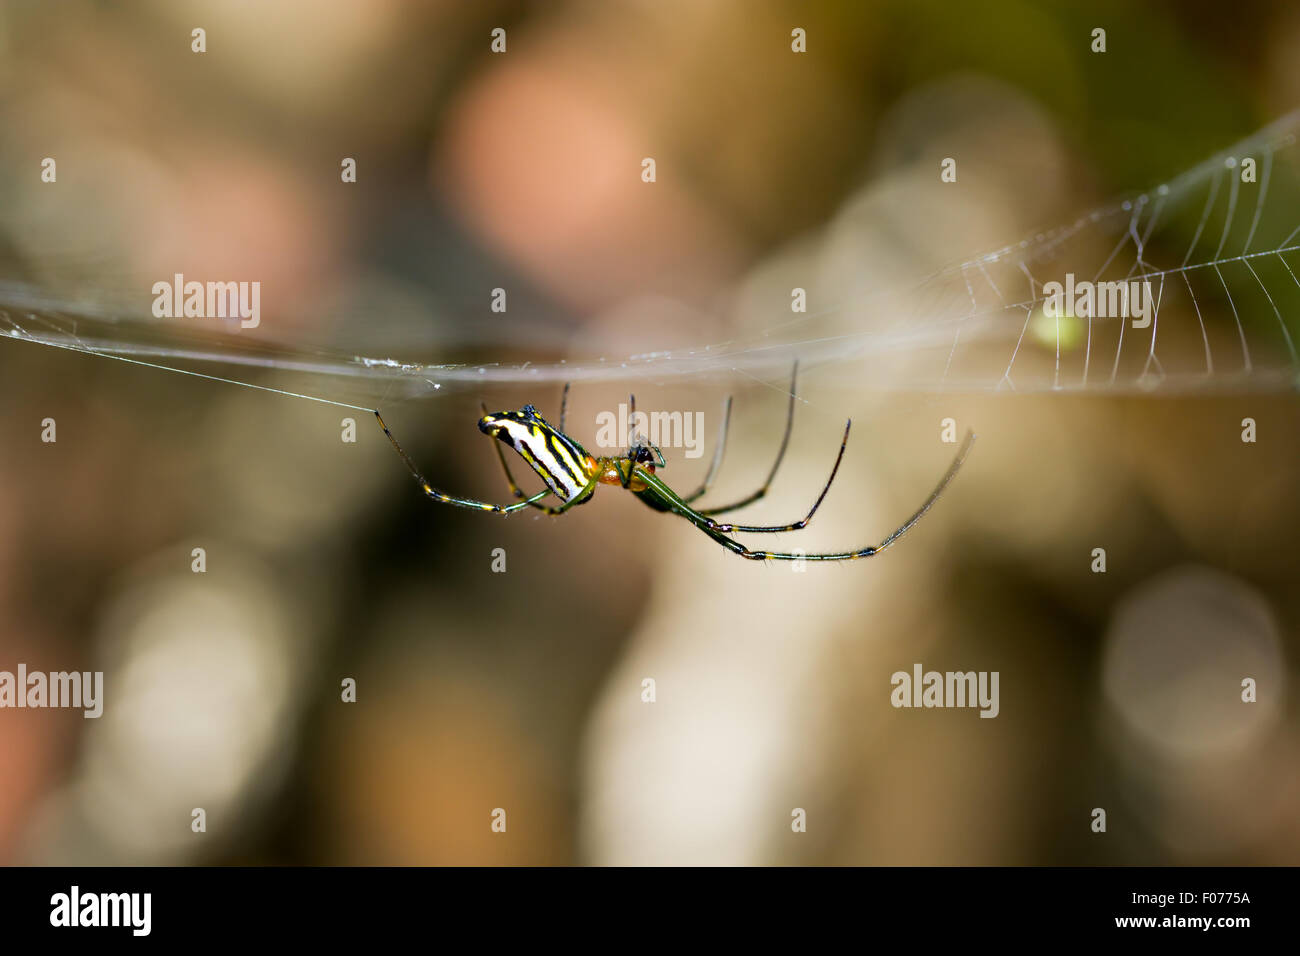 a spider on its web - Stock Image